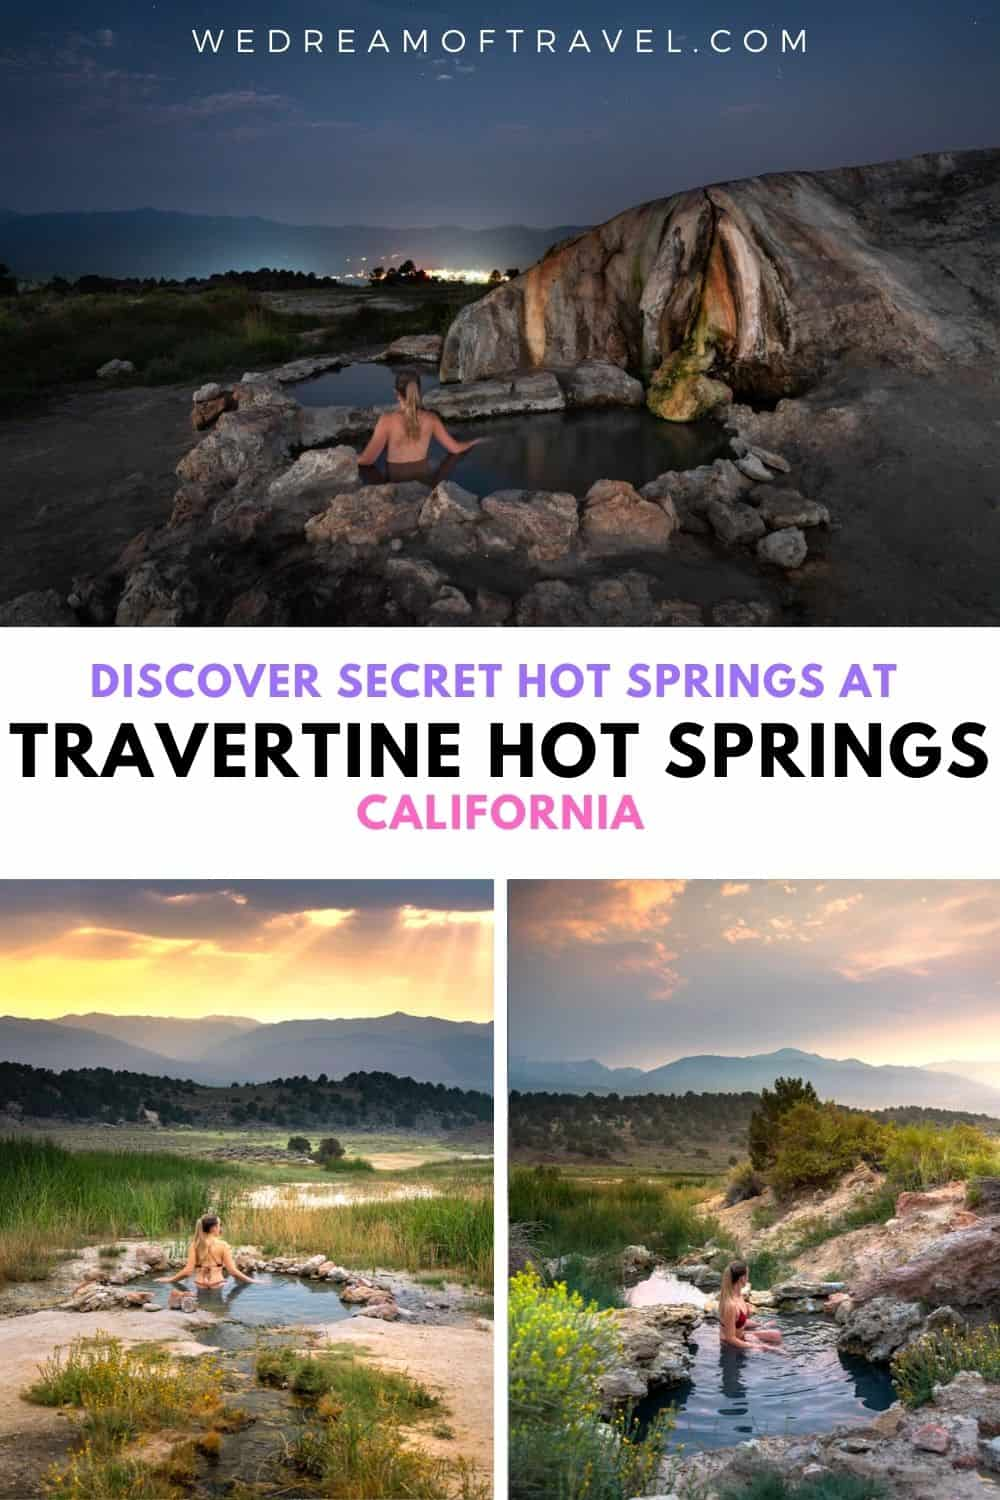 Discover everything you need to know for visiting Travertine Hot Springs, California including exactly where to find the secret hot springs! These are some of the best hot springs in the USA and well worth adding to your California road trip.